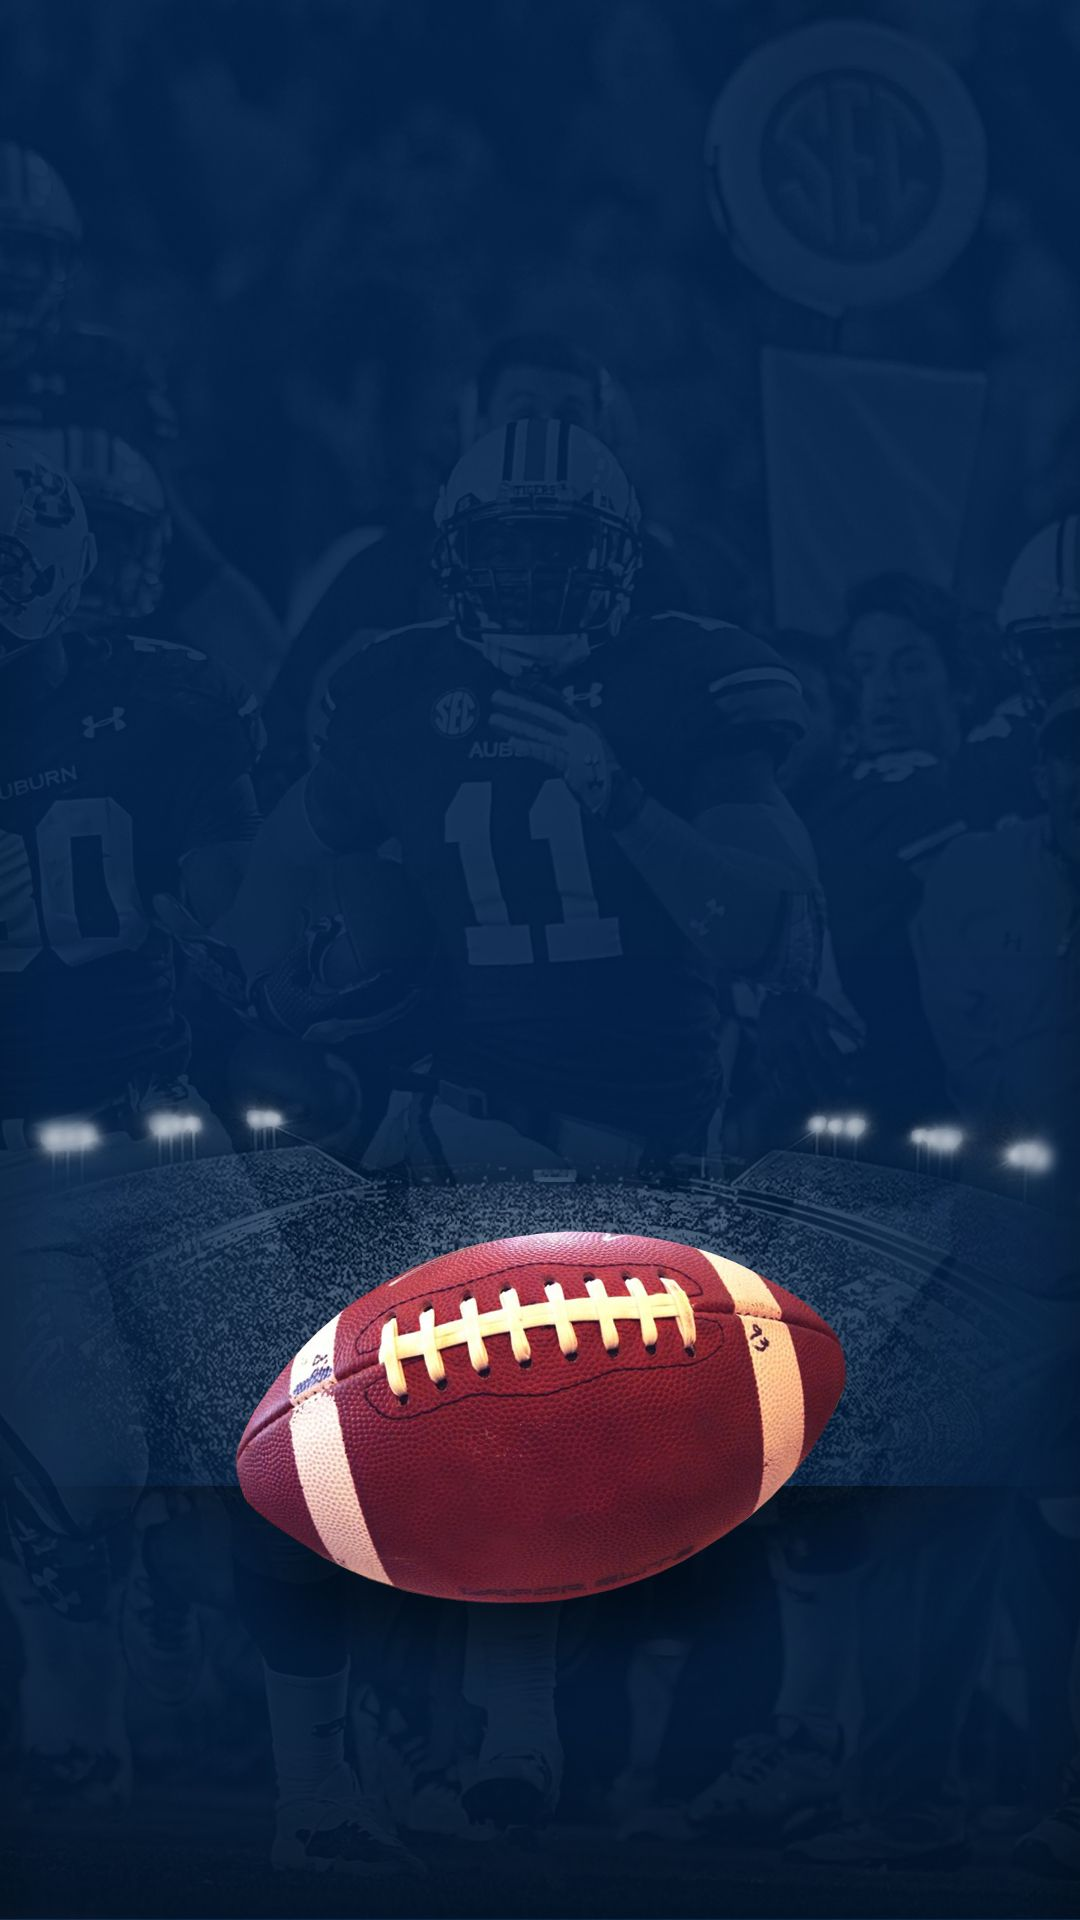 Http Wallpaperformobile Org 16648 Texas Am Wallpaper Android Html Texas Am Wallpaper Android Football Wallpaper Alabama Football Android Wallpaper